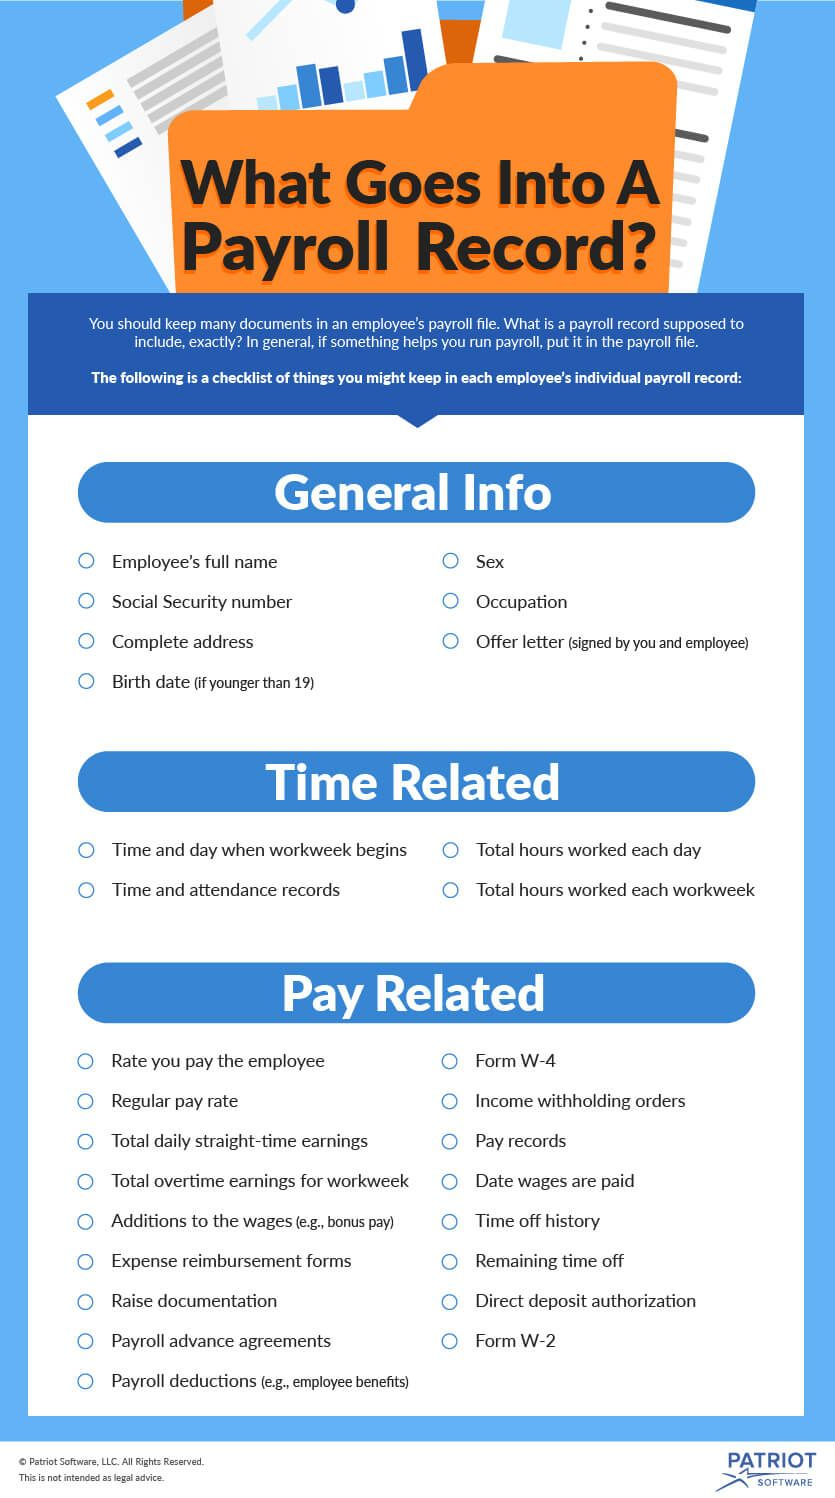 What Goes Into a Payroll Record Checklist Infographic